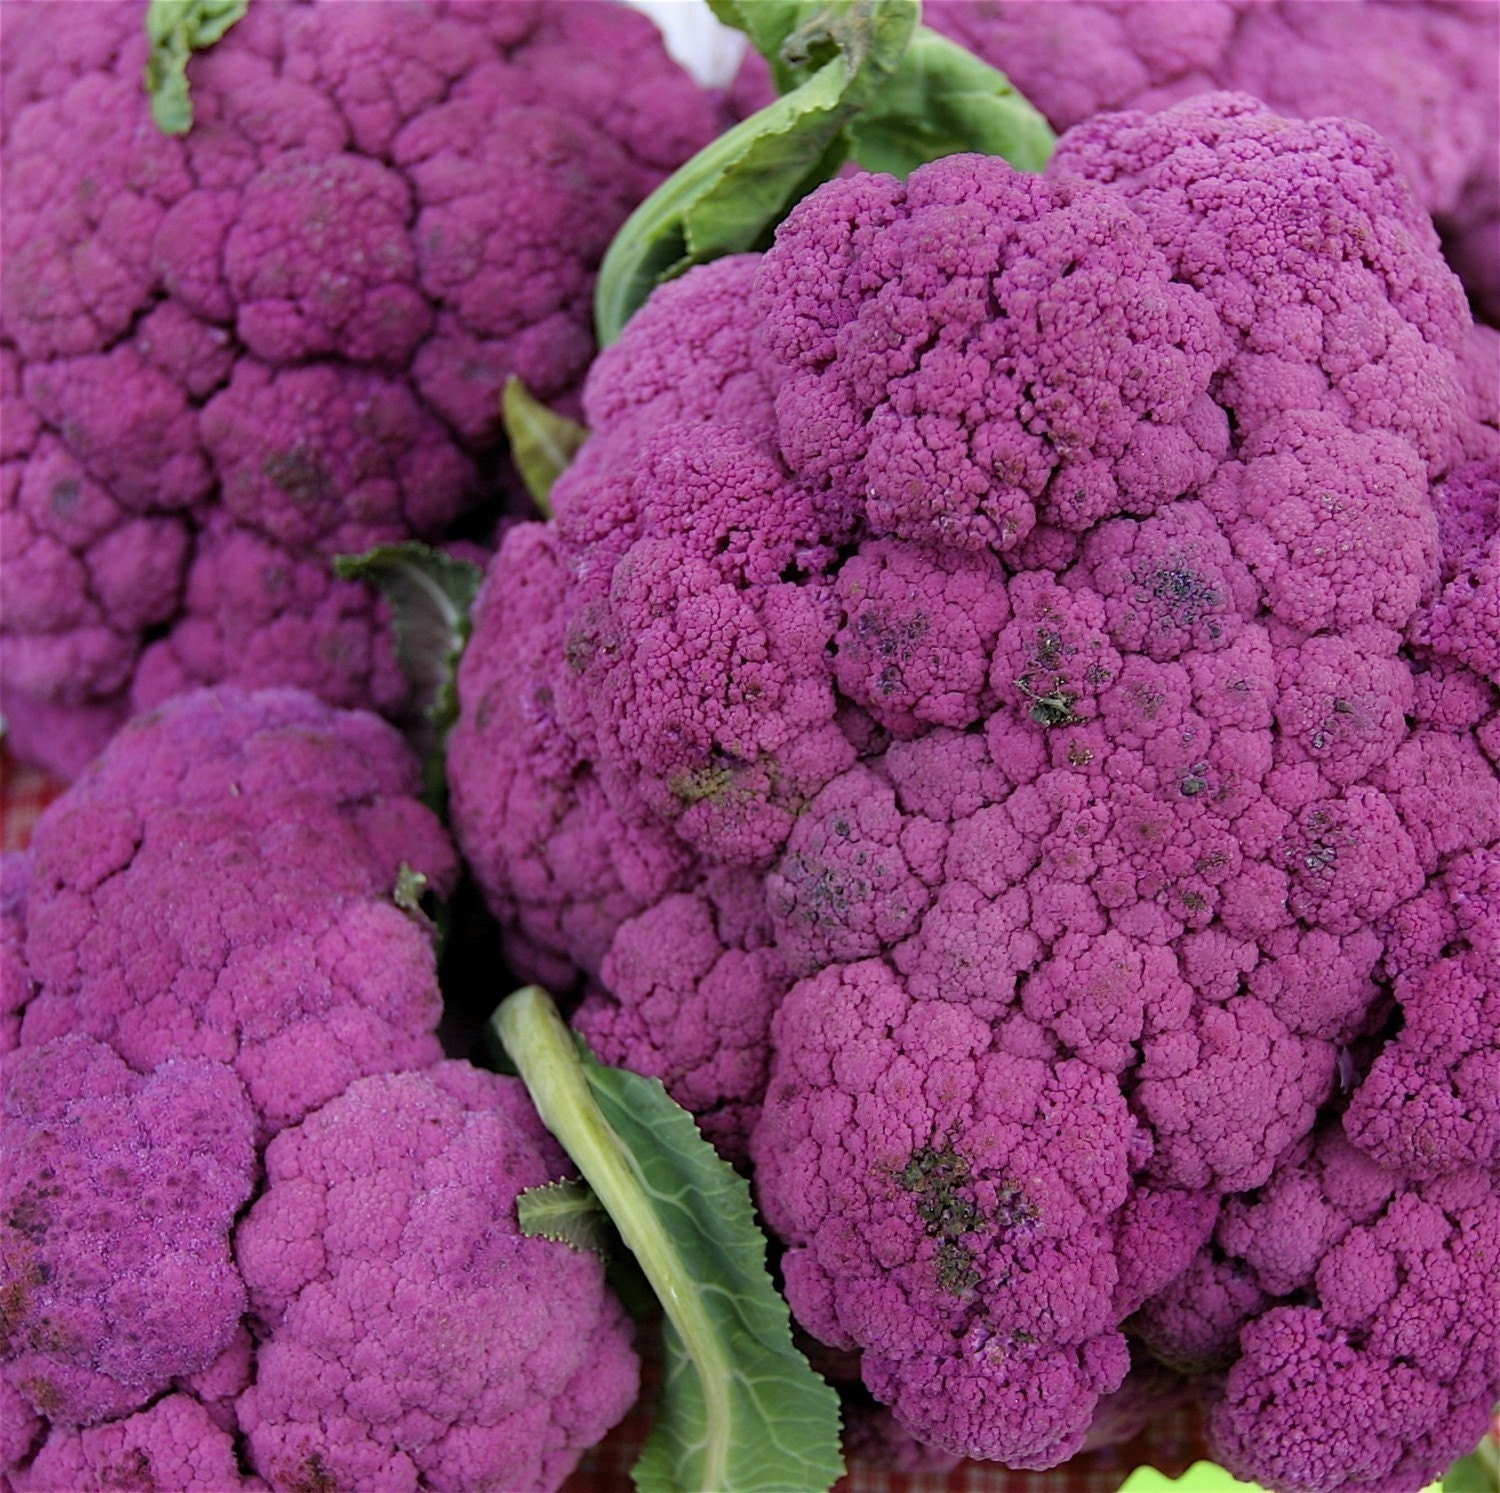 Heirloom Organic Purple of Sicily Cauliflower Garden Vegetable Seed Seeds